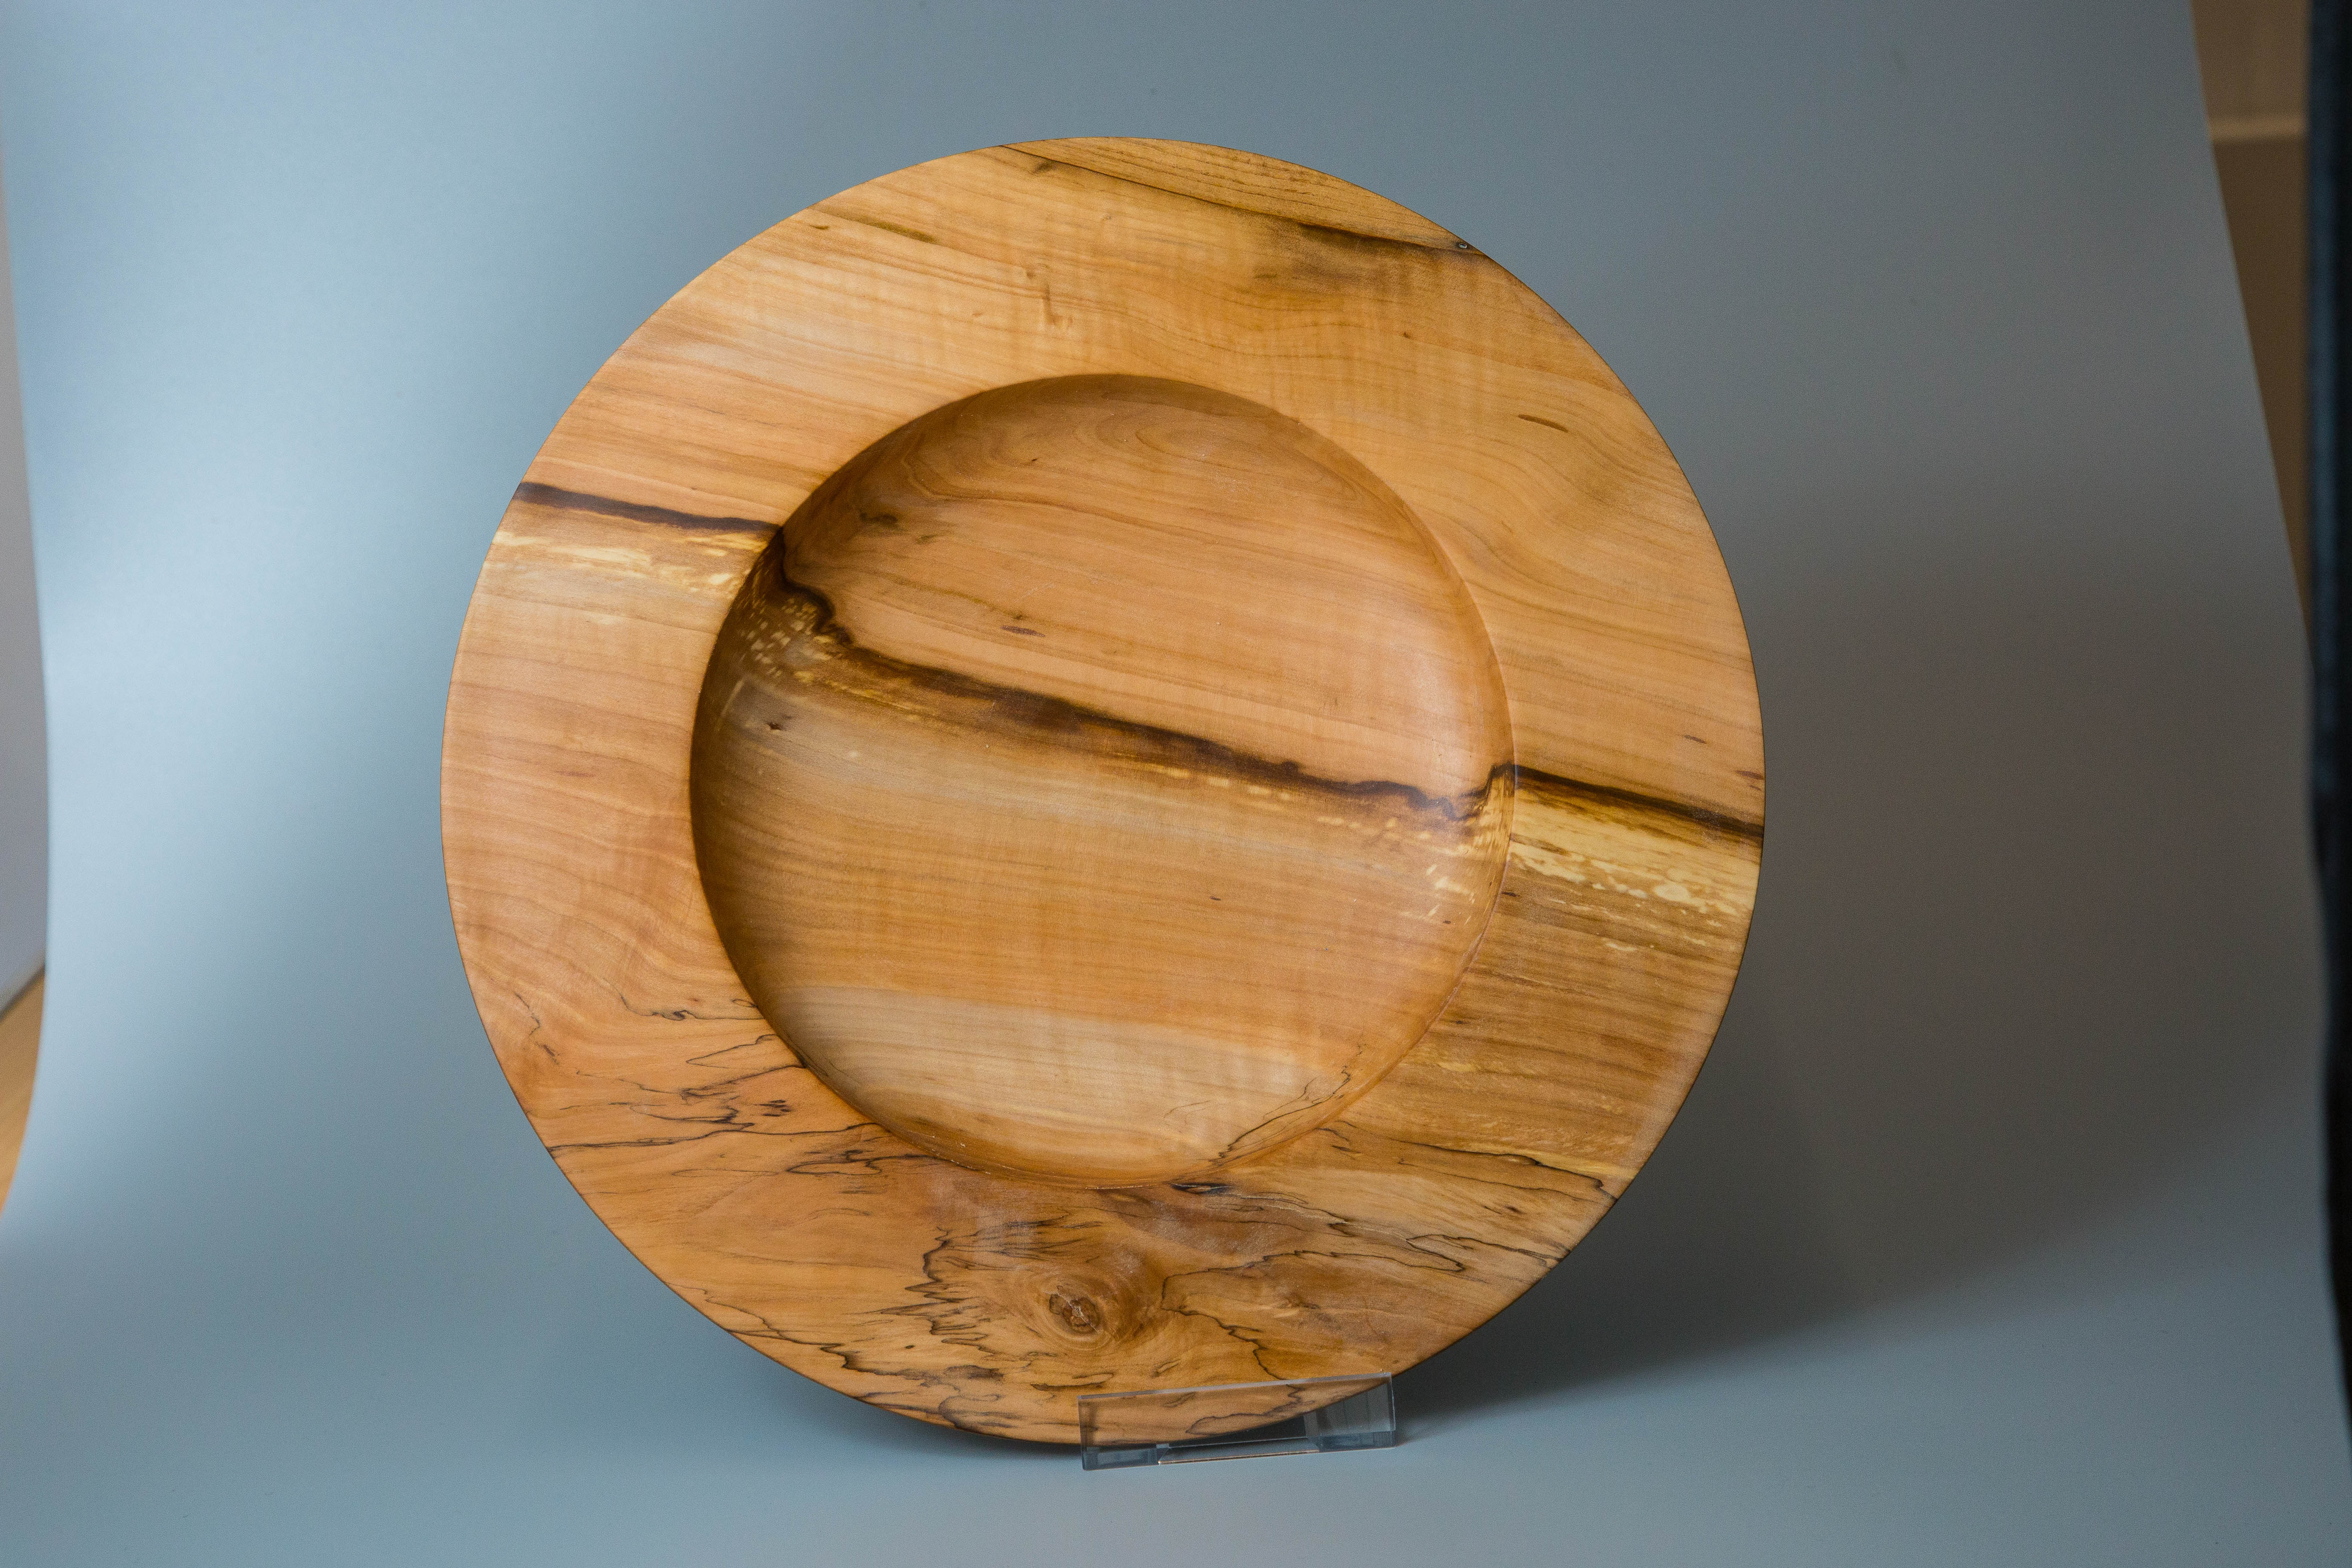 A platter in Sweet Chestnut Burl by Mick Curran